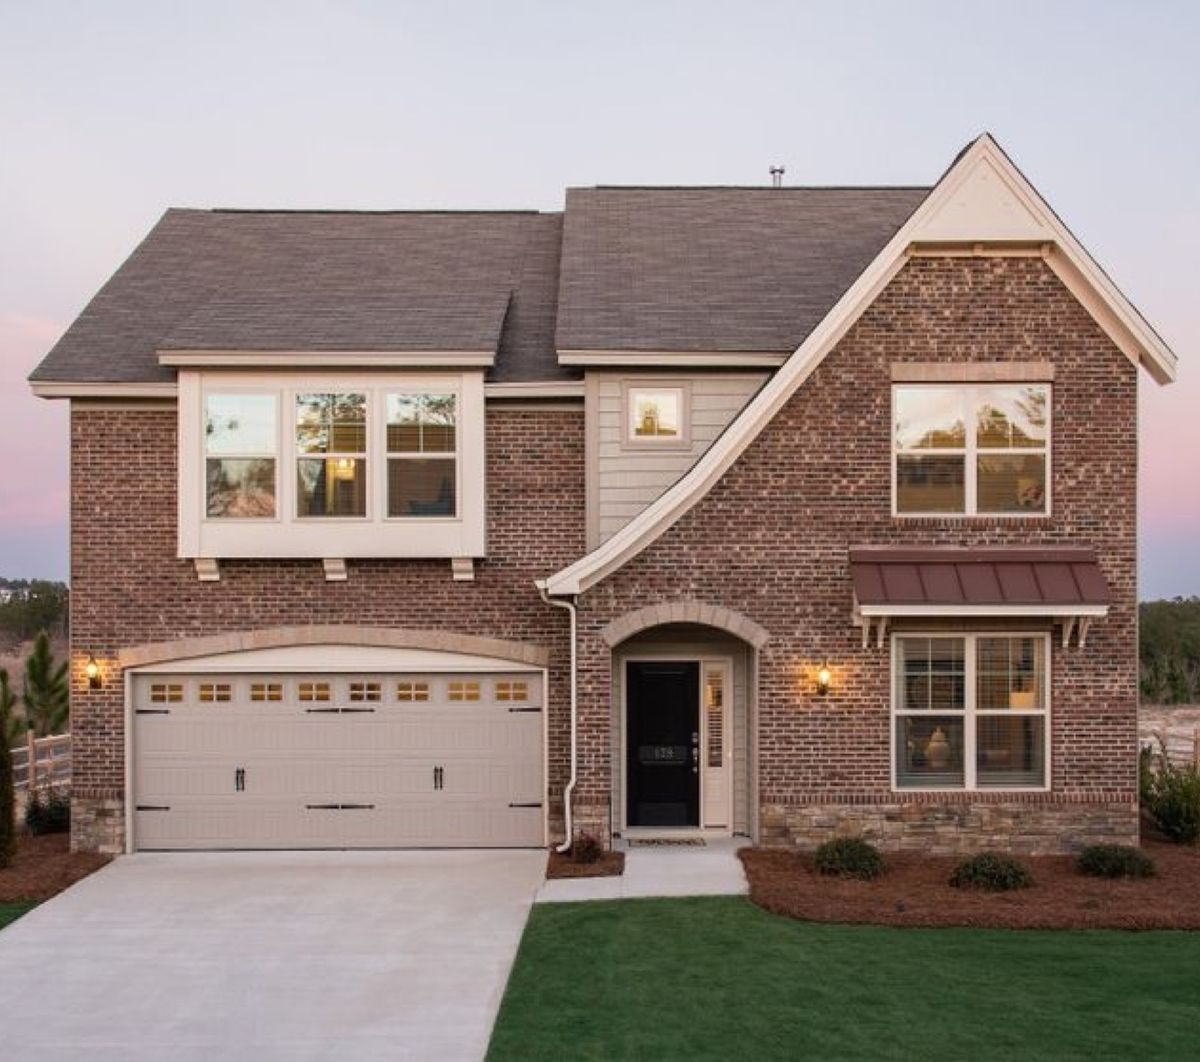 Brick two-story house by new home builders, Mungo Homes